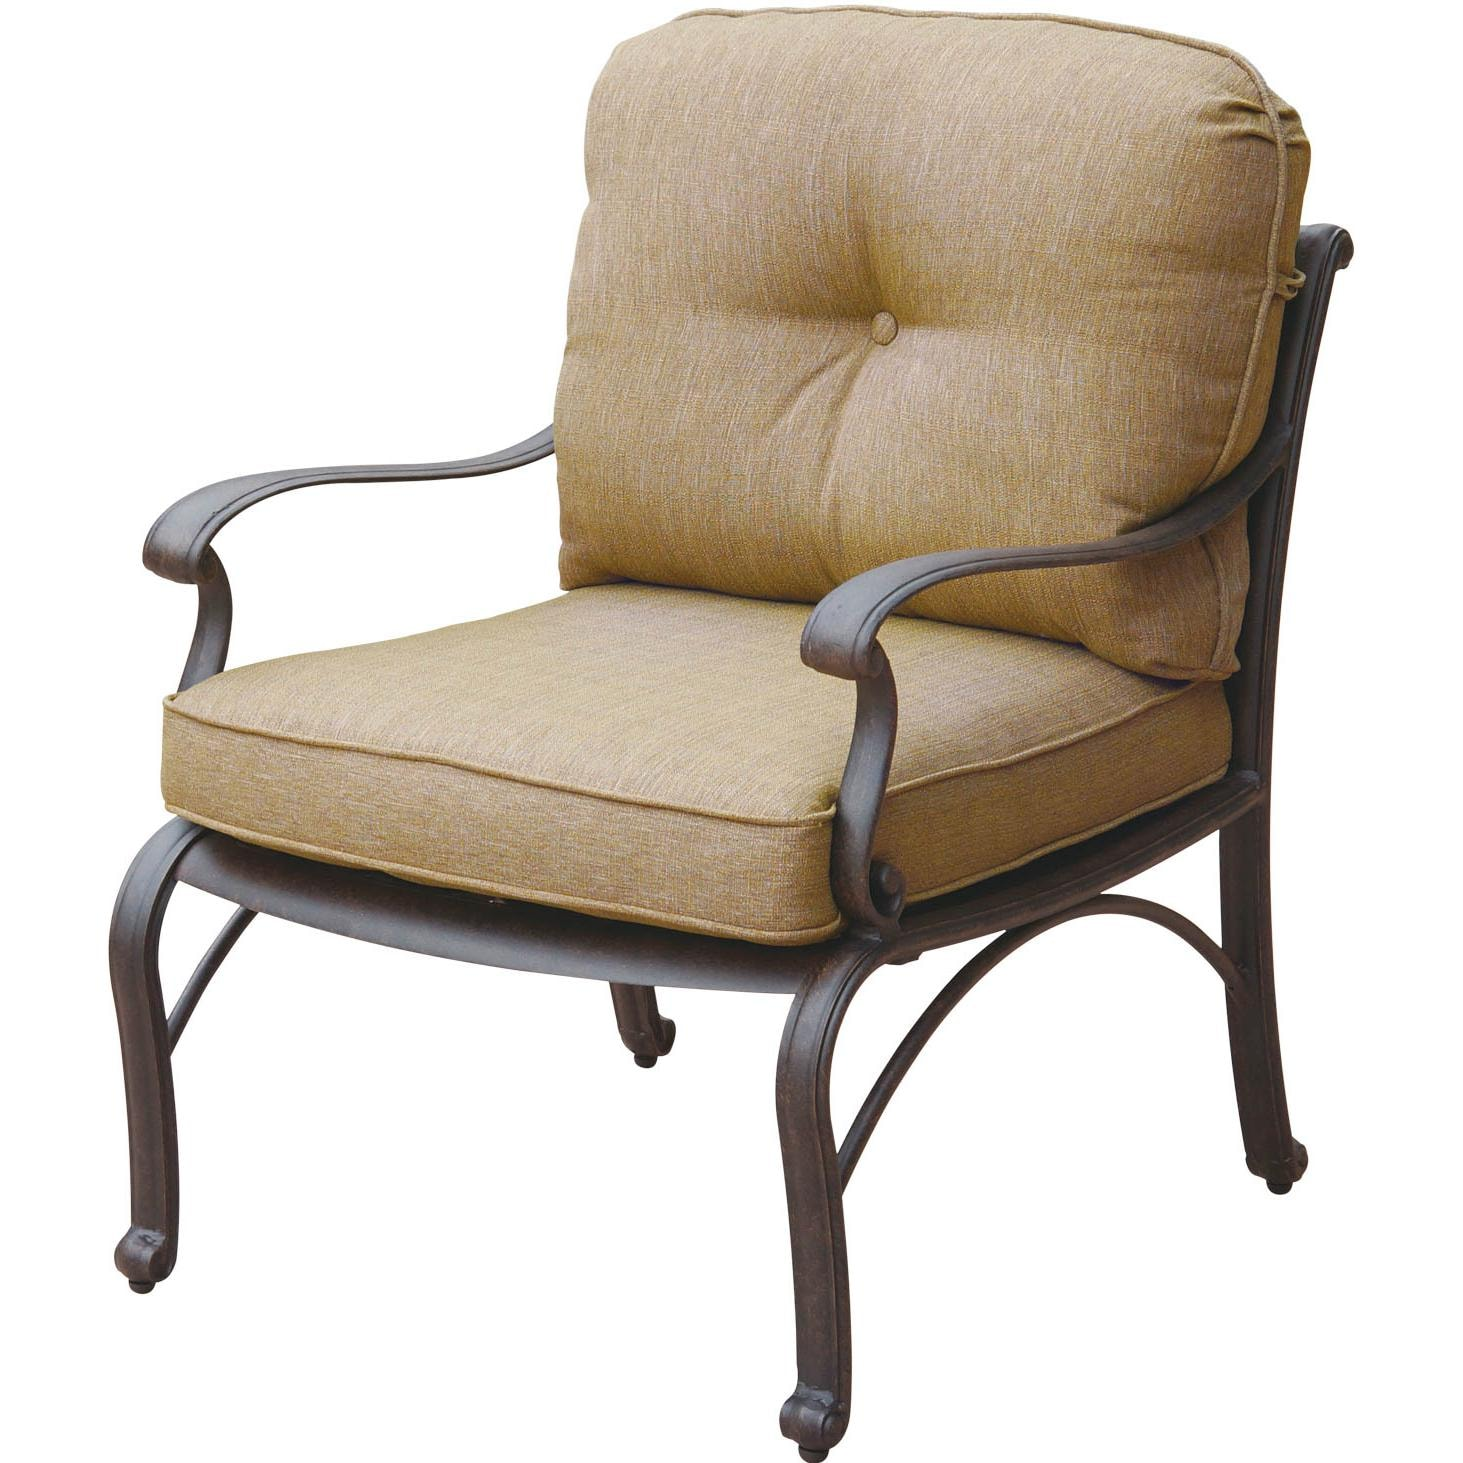 Darlee catalina cast aluminum patio club chair ultimate for Aluminum patio chairs